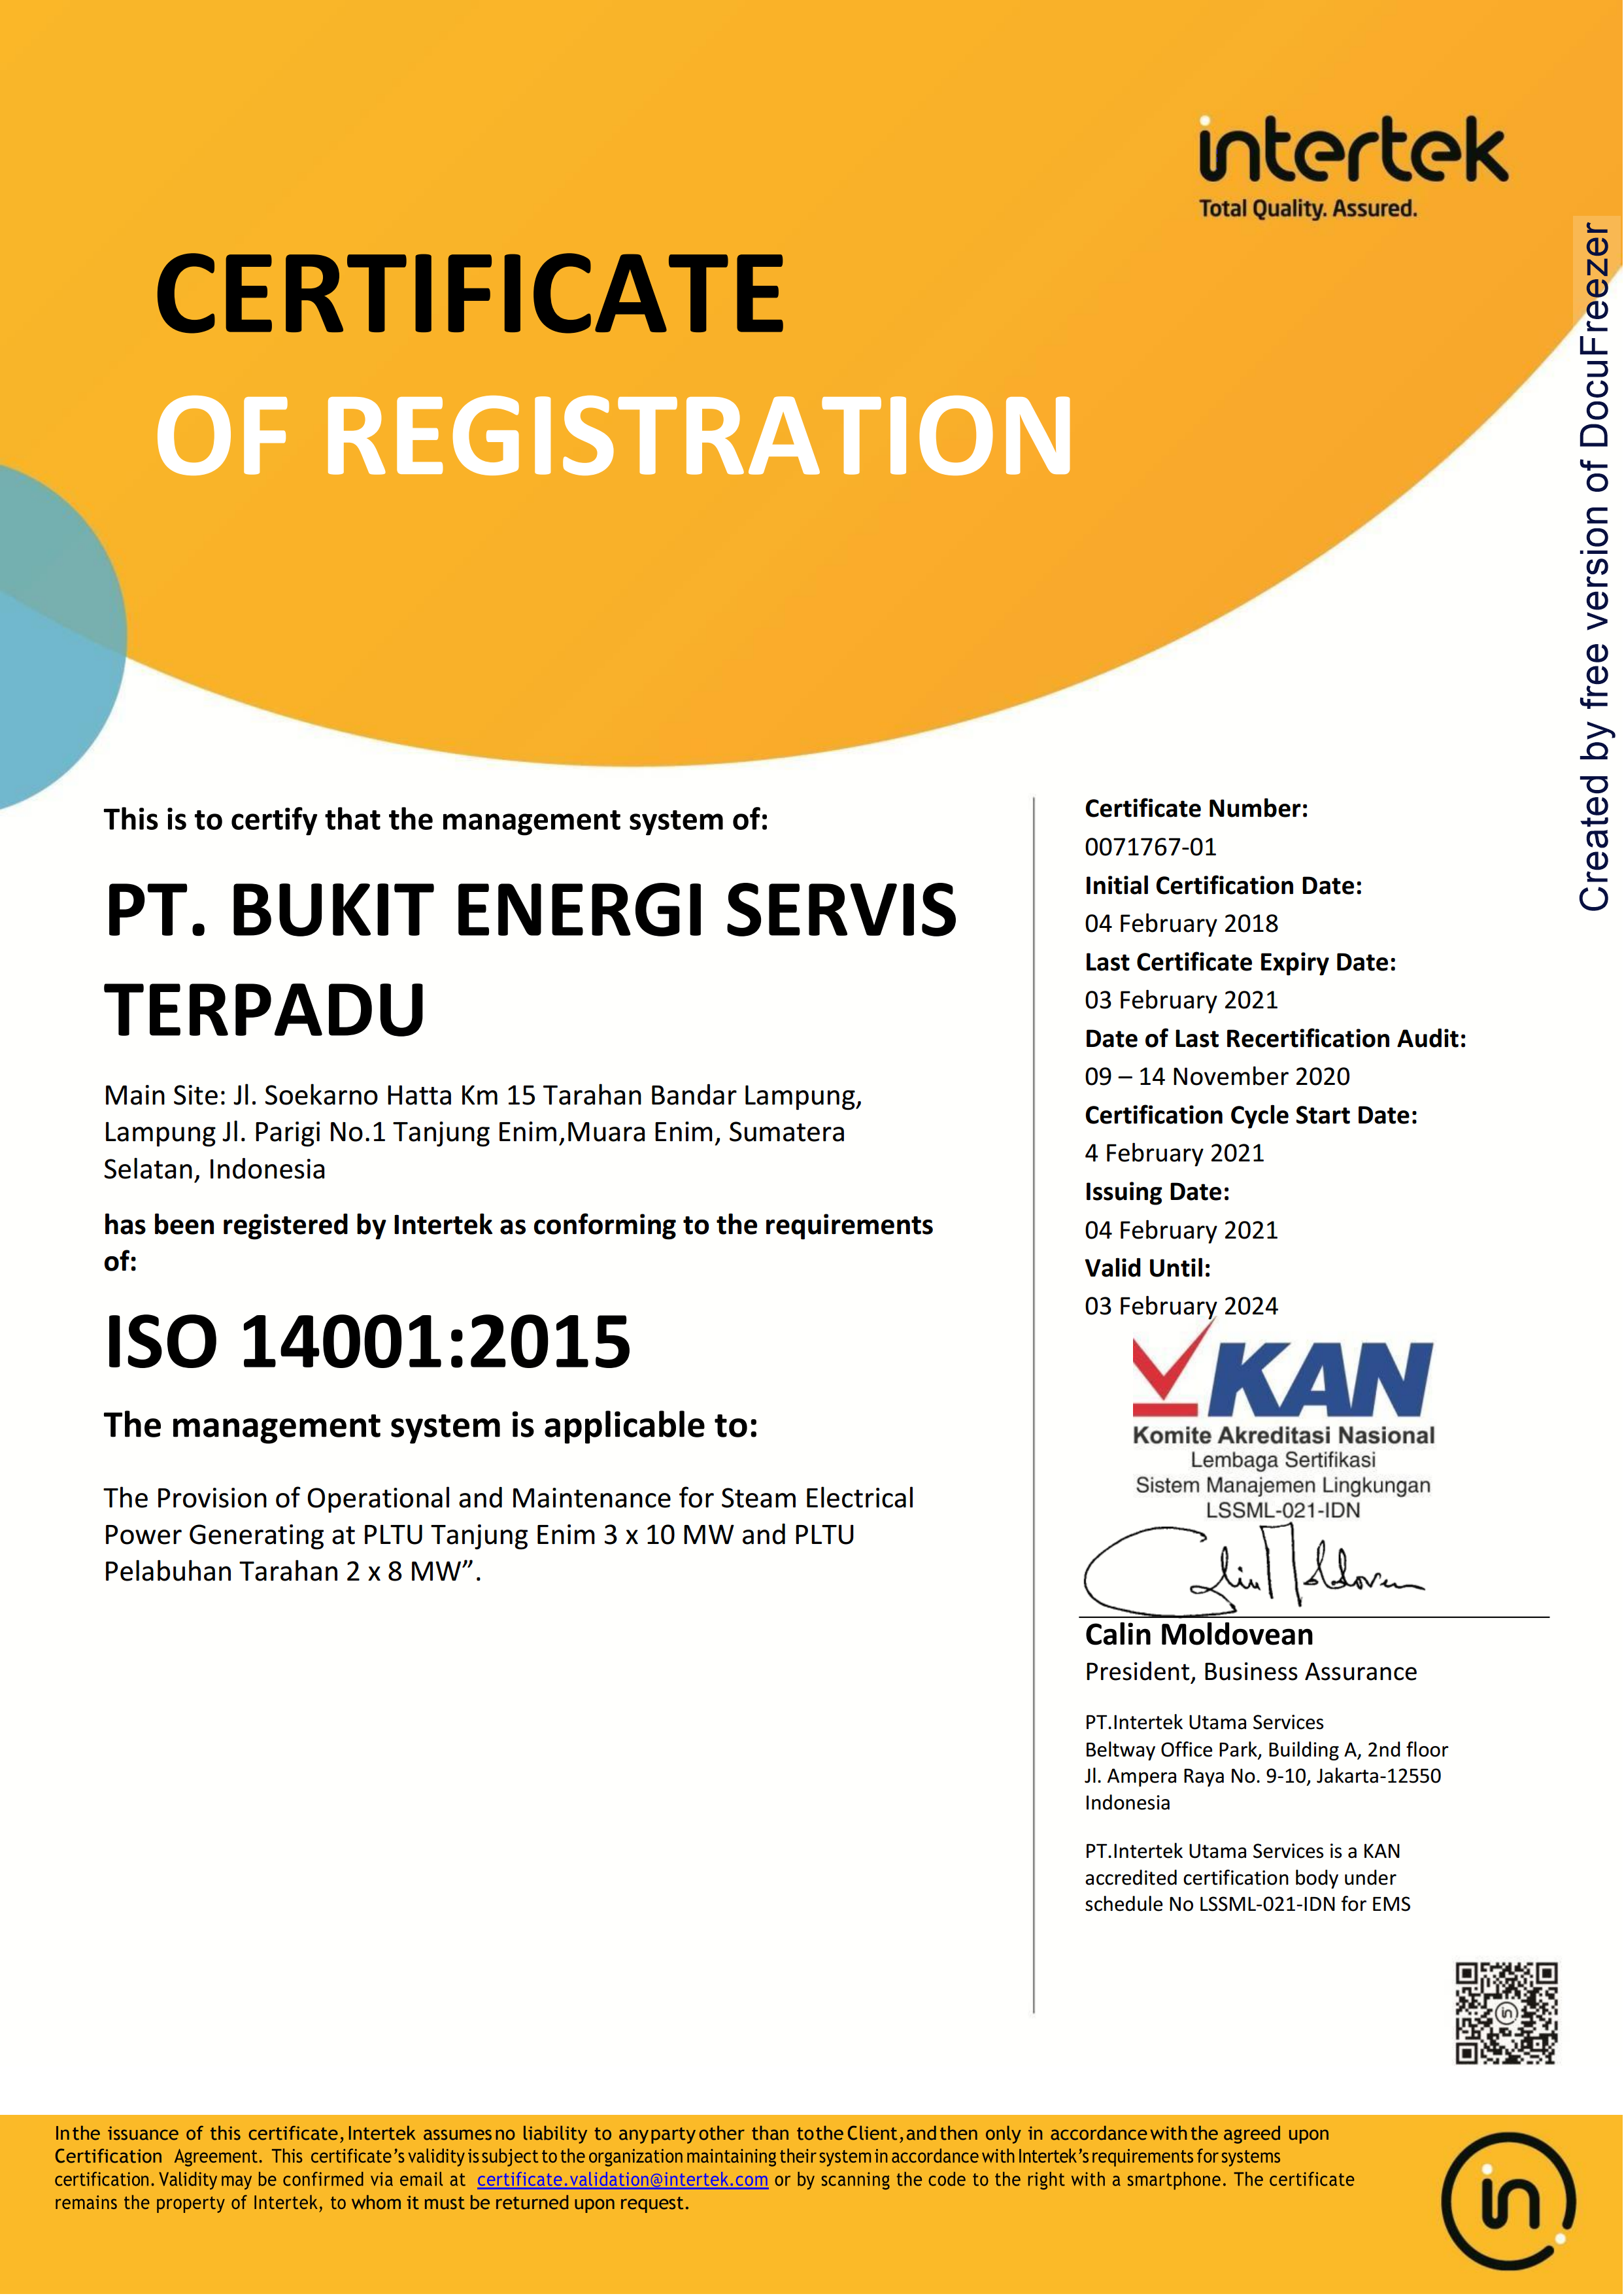 ISO 14001 Certificate;2015